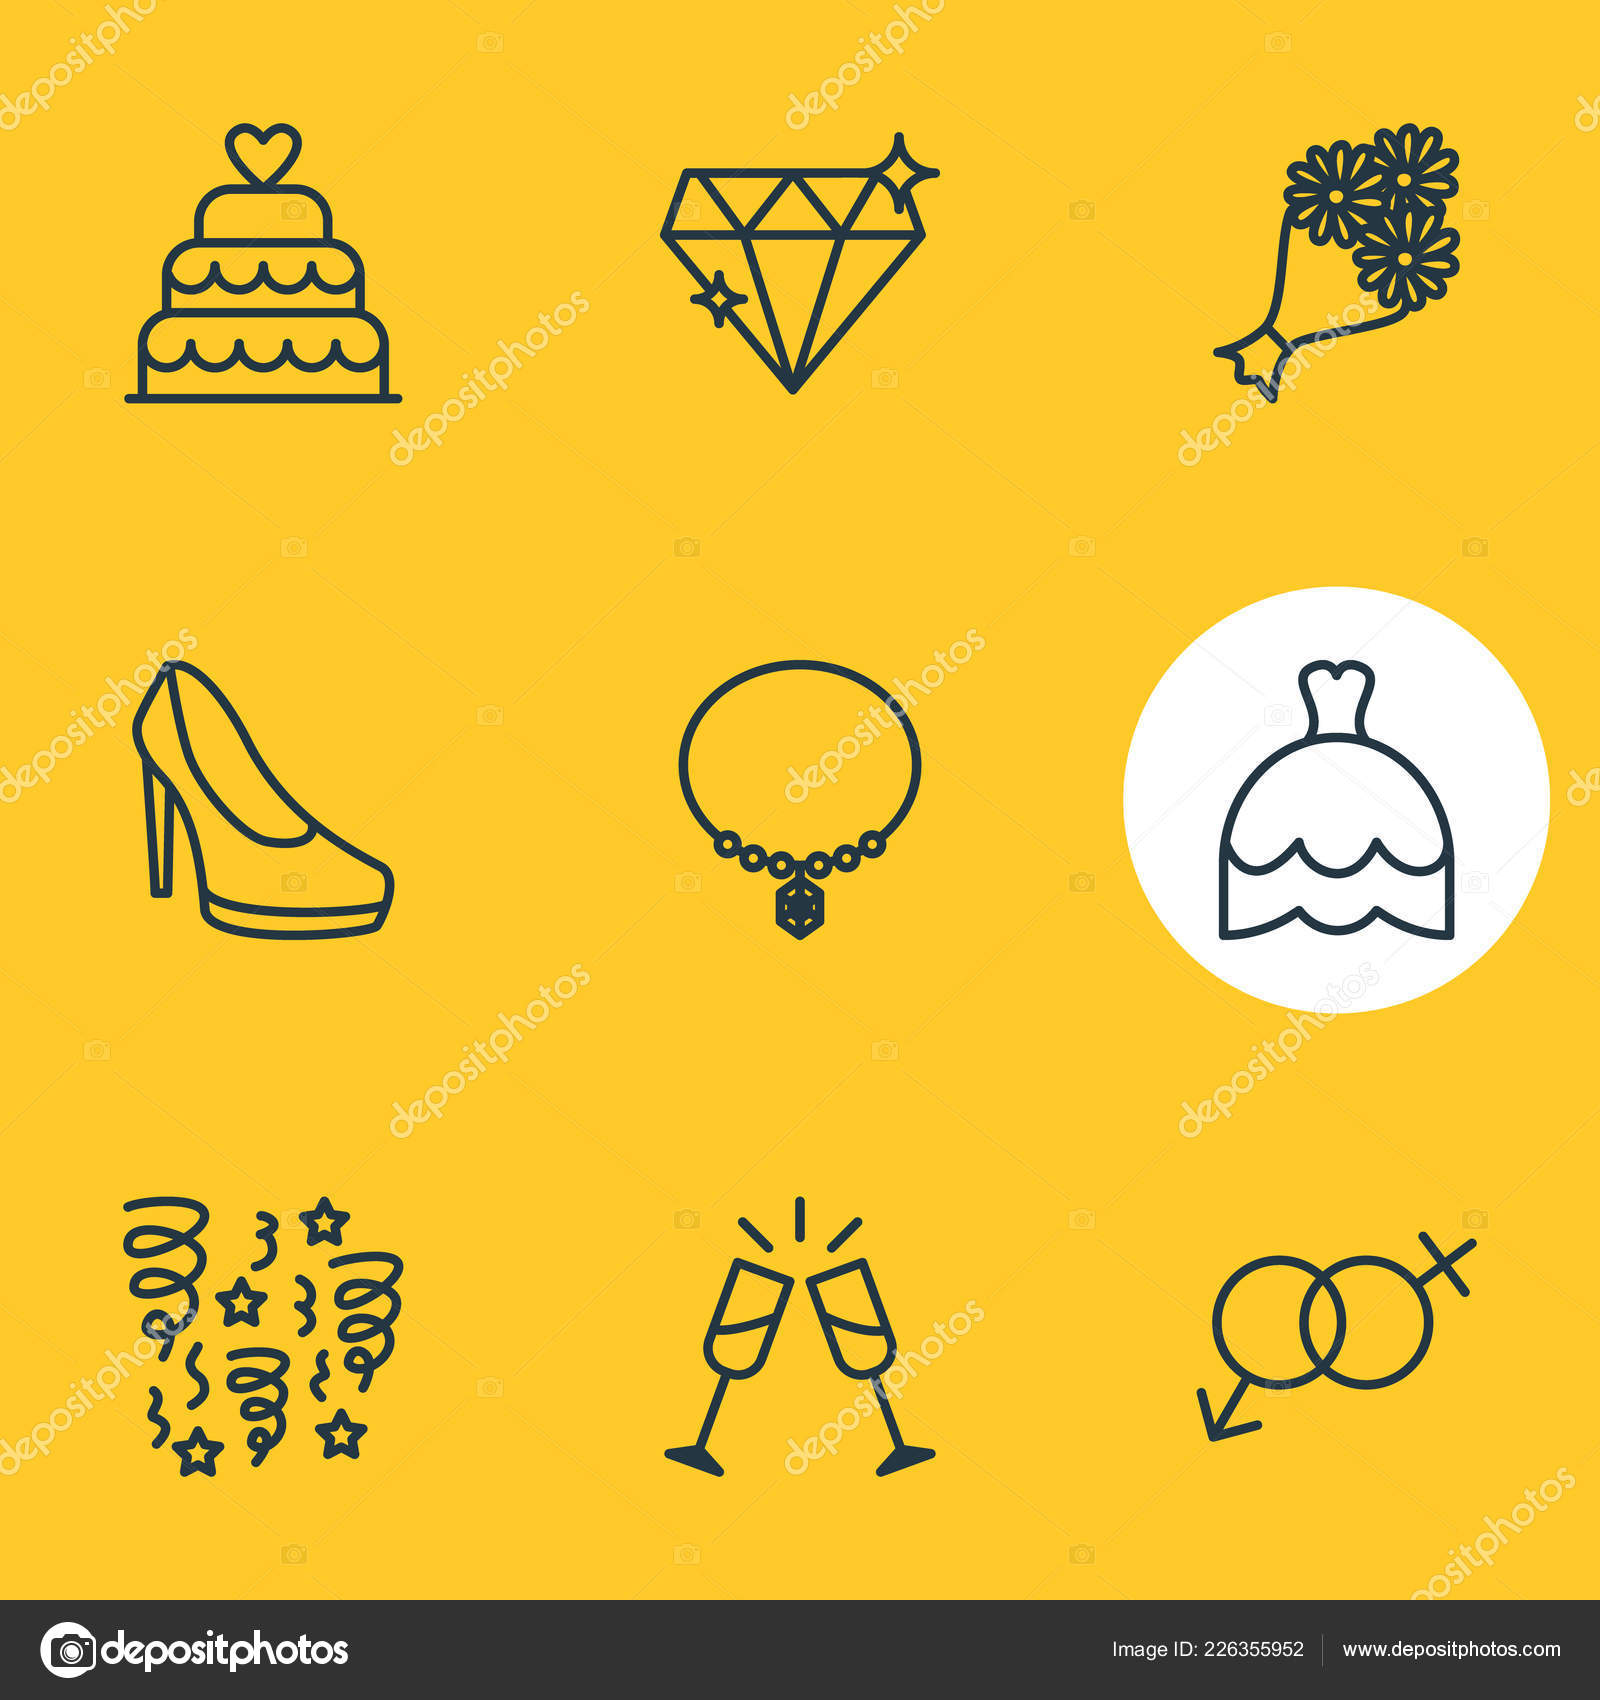 1cd8630523 Vector illustration of 9 marriage icons line style. Editable set of  necklace